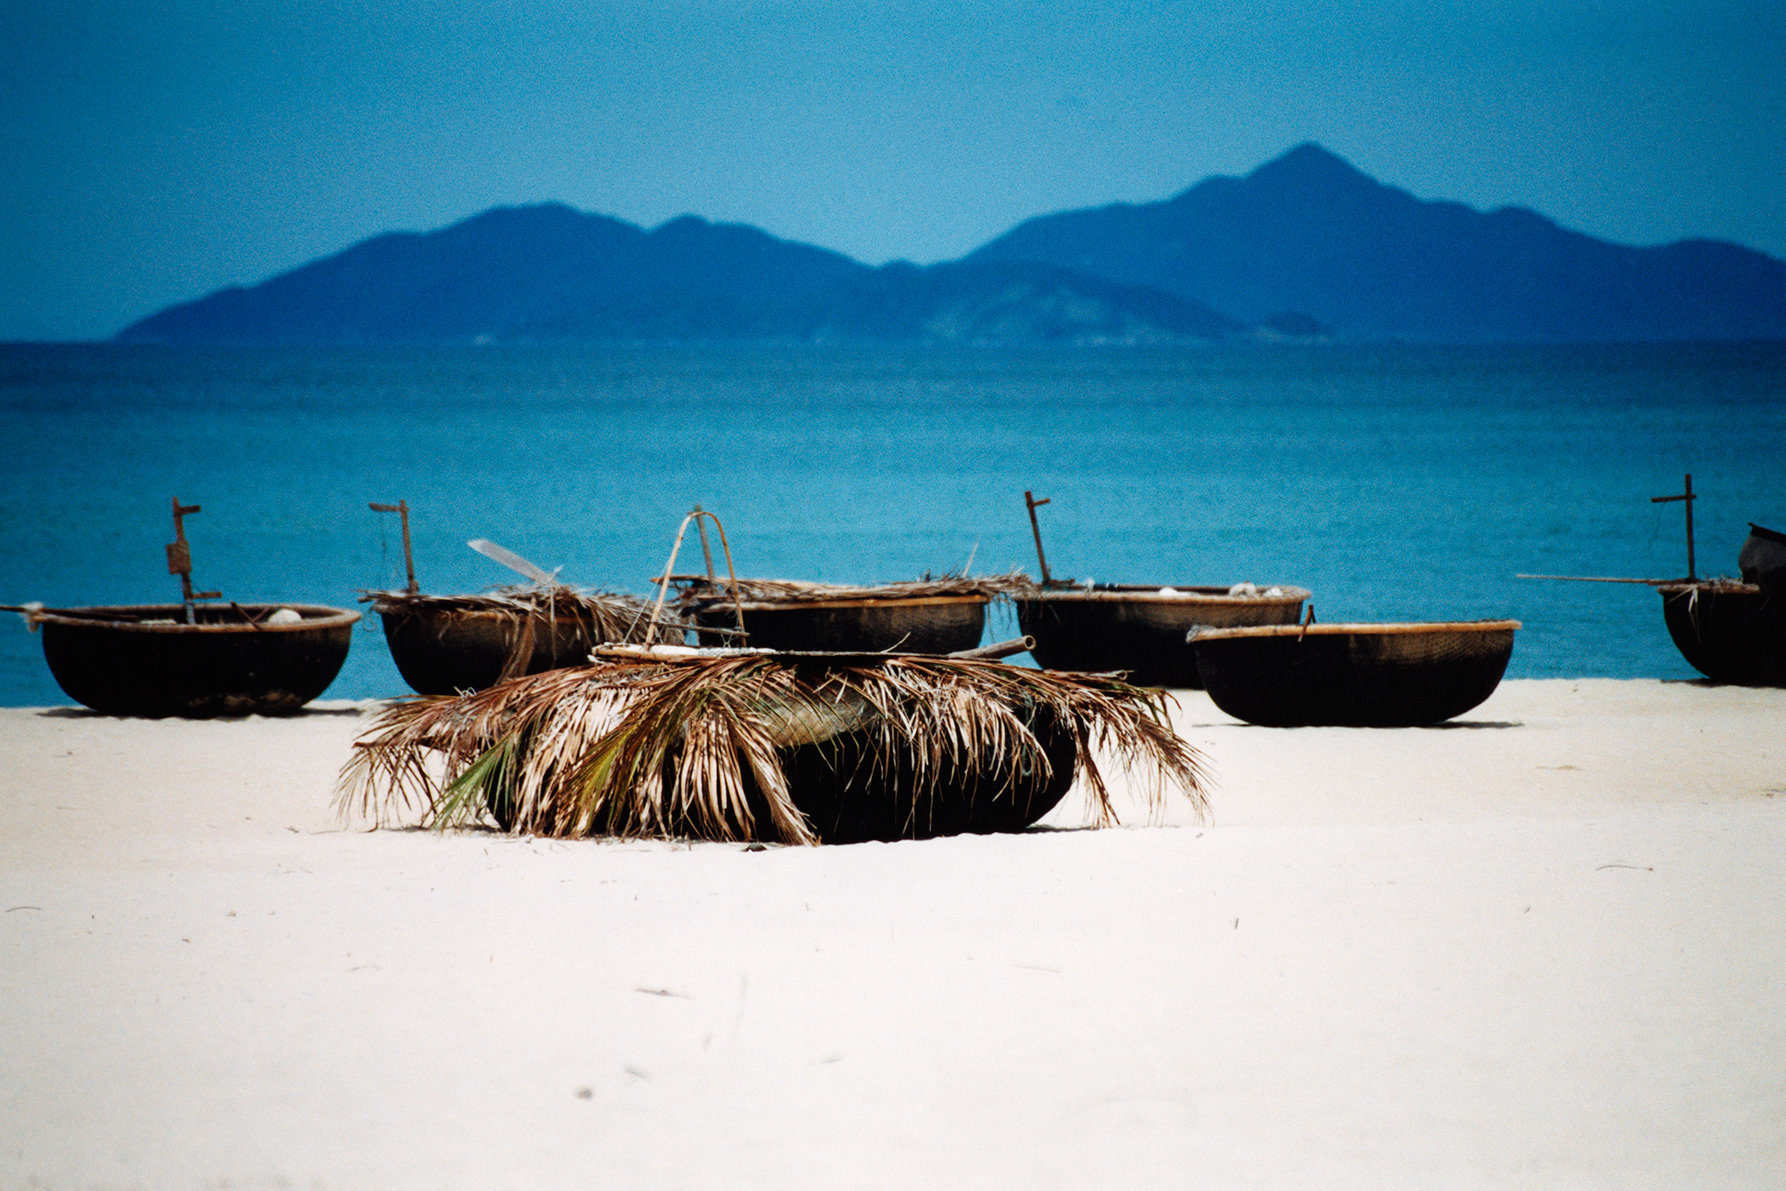 Vietnam, fishing boats on China Beach, Bai non nuoc. China Beach, near Da nang, on the South China Sea, was an in-country R & R retreat for US servicemen during the Vietnam war. It was also the home to 510th Evacuation Hospital.  Today, it's simply one of Vietnam's many beautiful beaches; it is a gorgeous 18 mile (30 km) stretch of fine white sand running from near Danang to Hoi An.